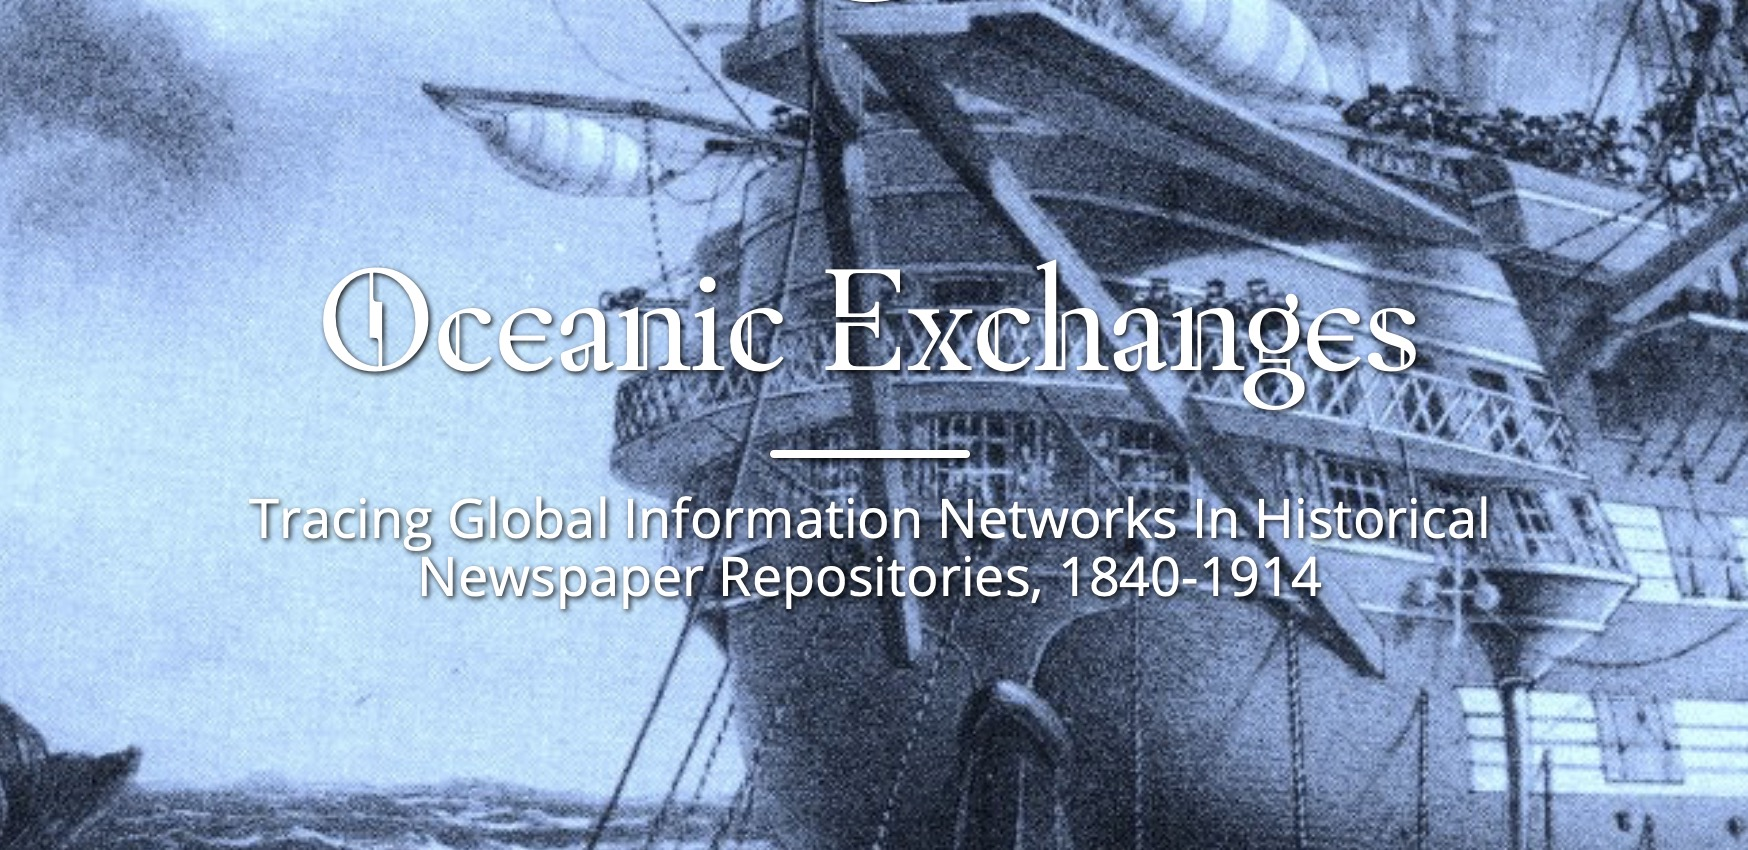 """Over an illustration of a ship, the text reads """"Oceanic Exchanges: Tracing Global Information Networks in Historical Newspaper Repositories, 1840-1914"""""""